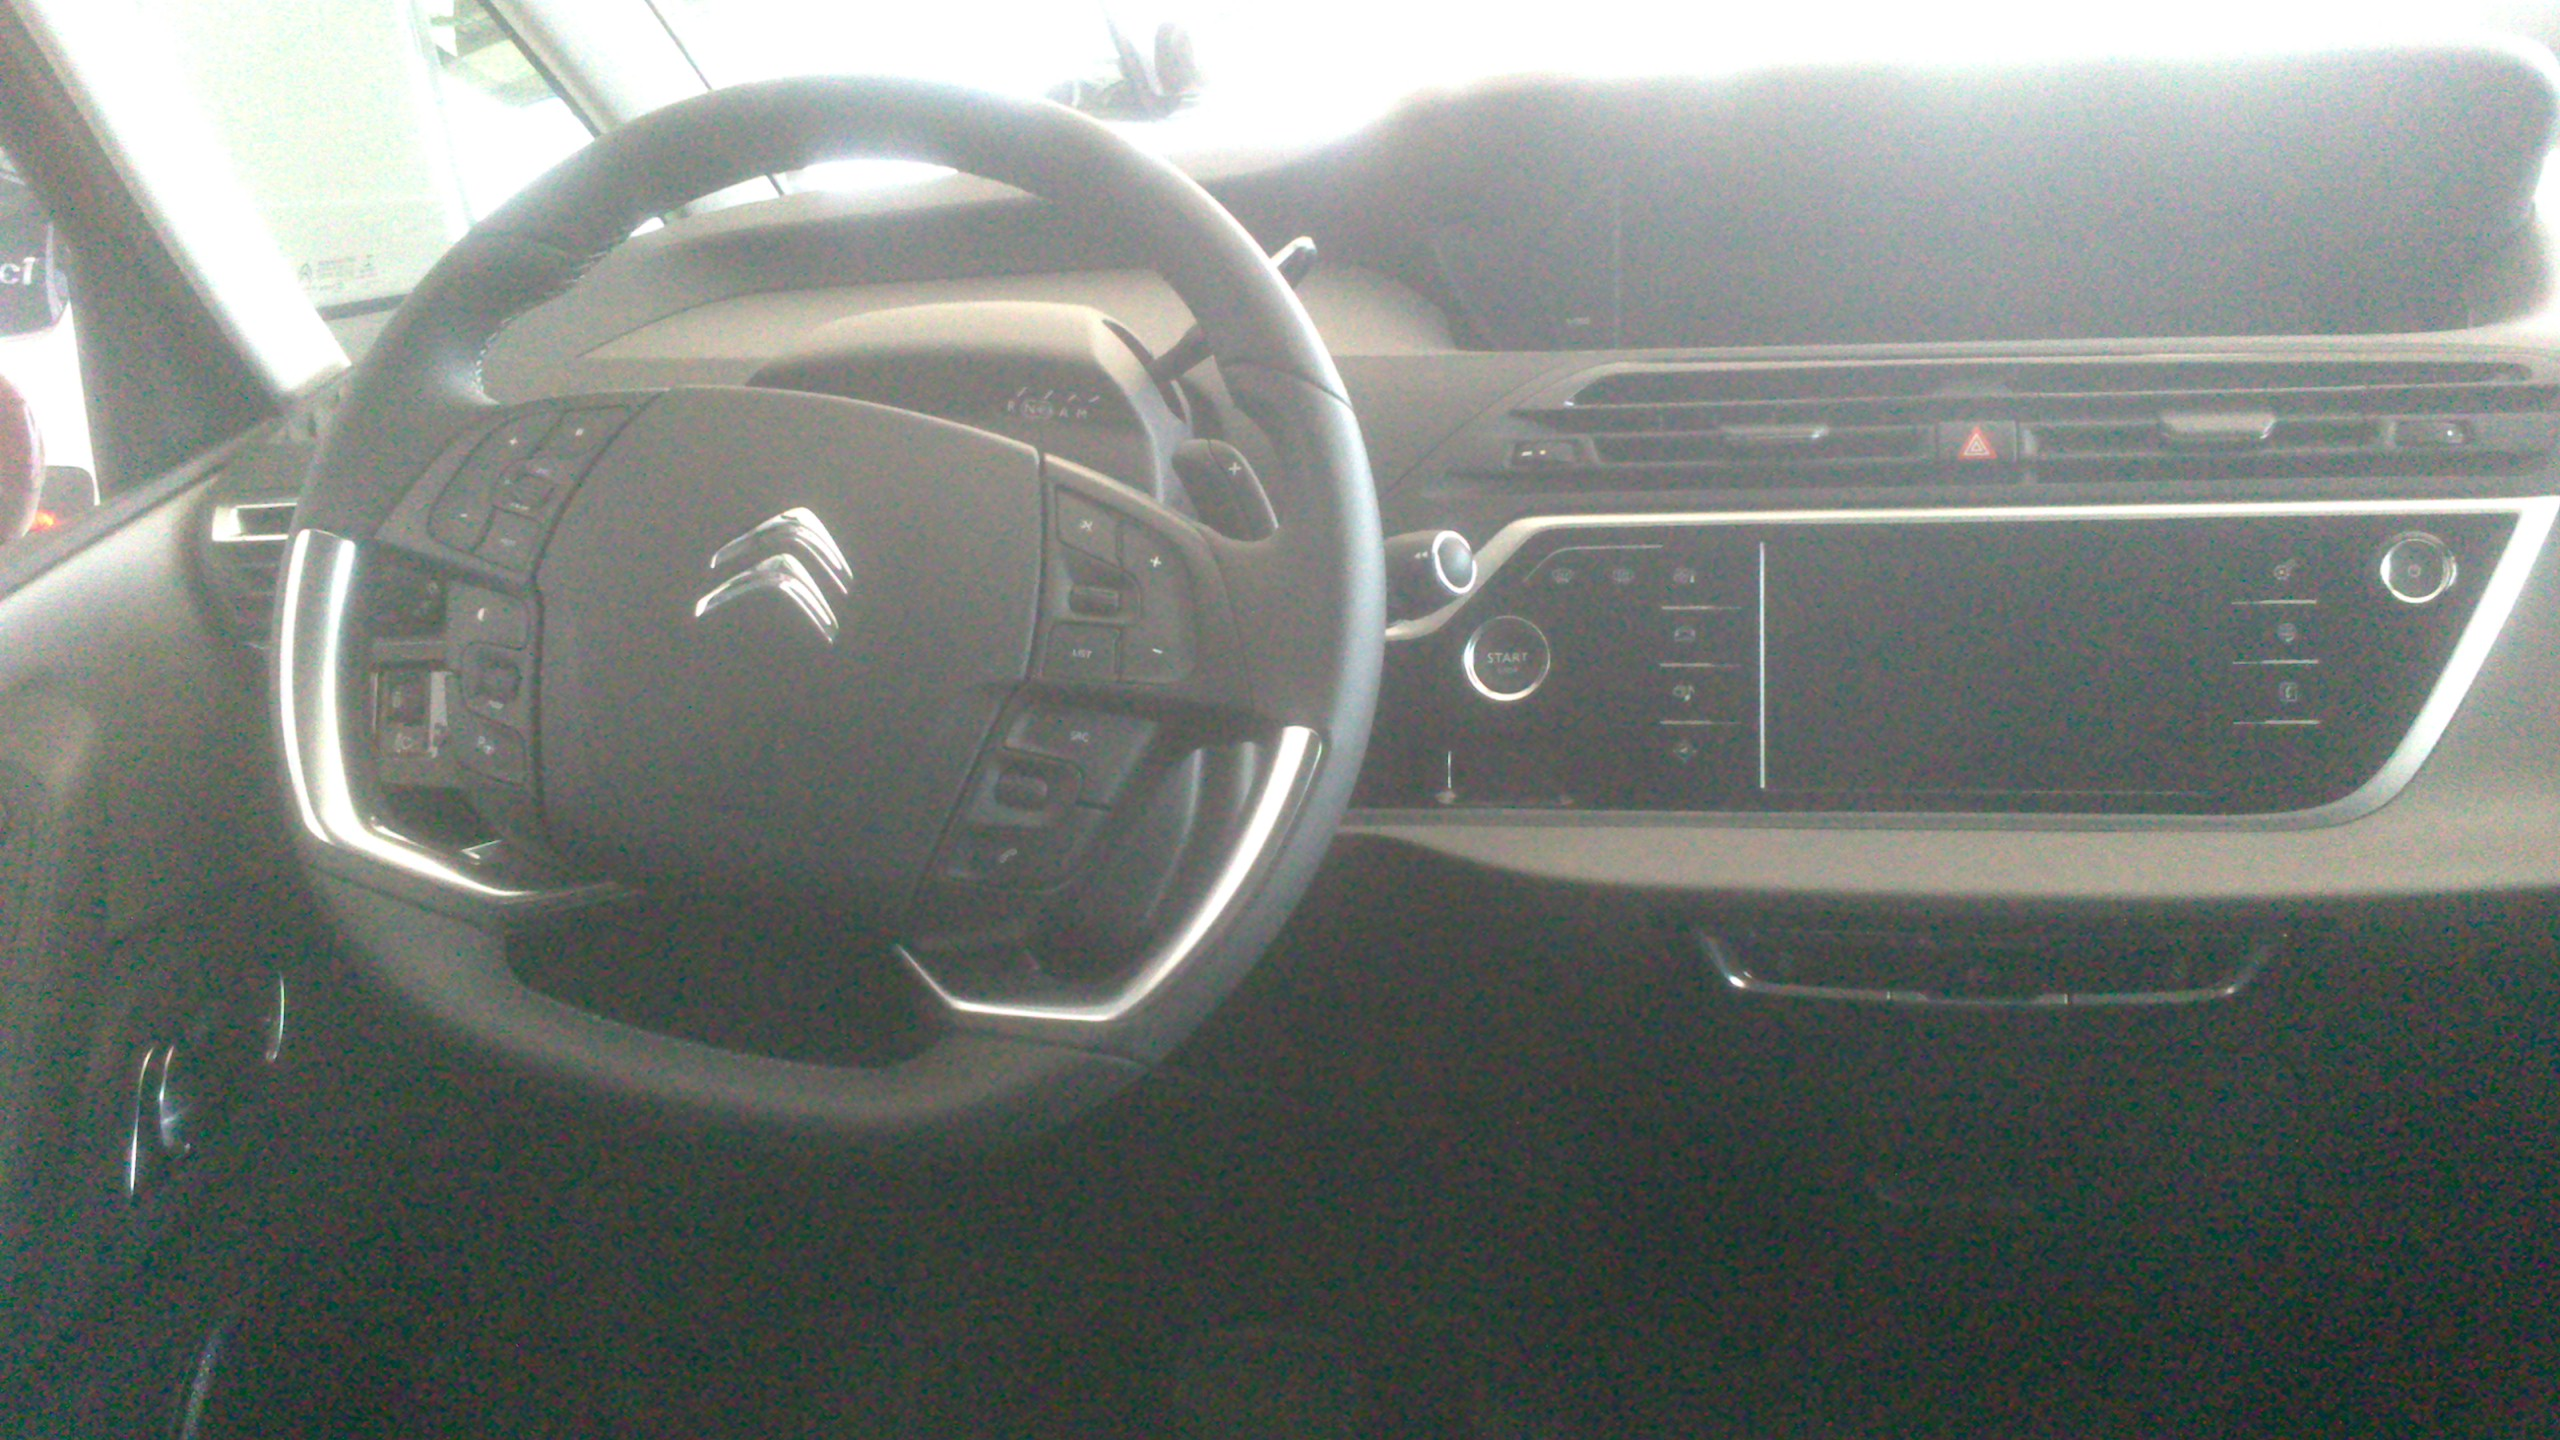 Citro n c4 picasso 2013 mes propres photos auto for C4 picasso 2013 interieur